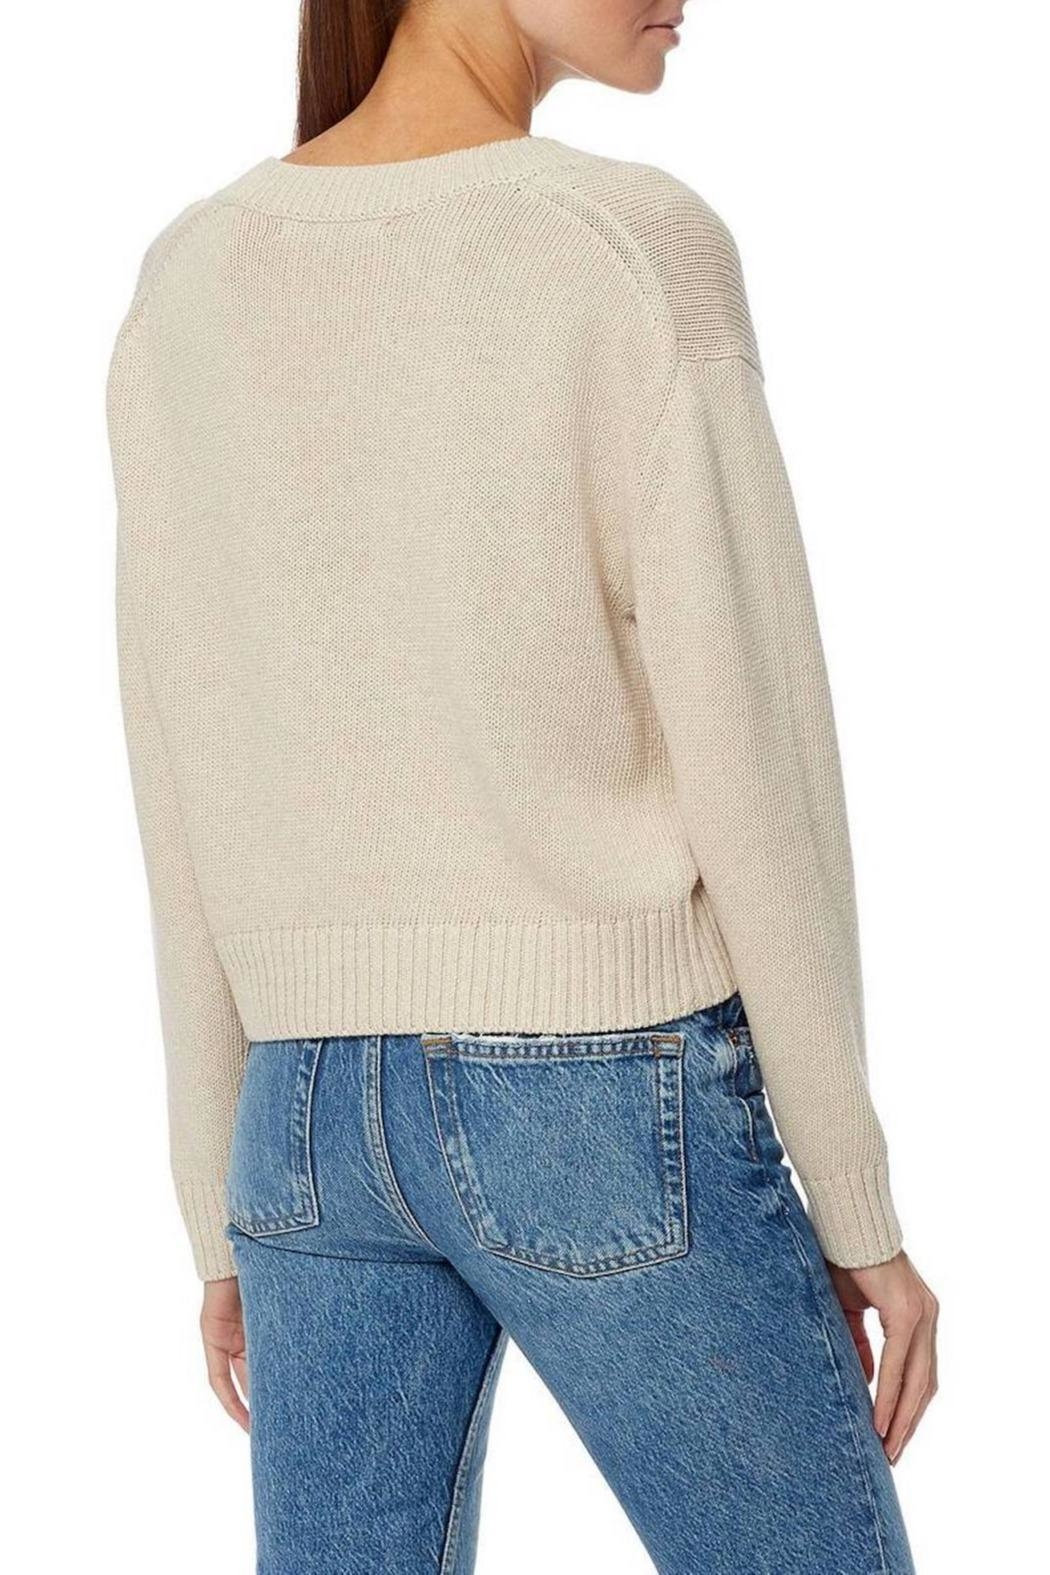 360 Cashmere Bailey Sweater - Side Cropped Image